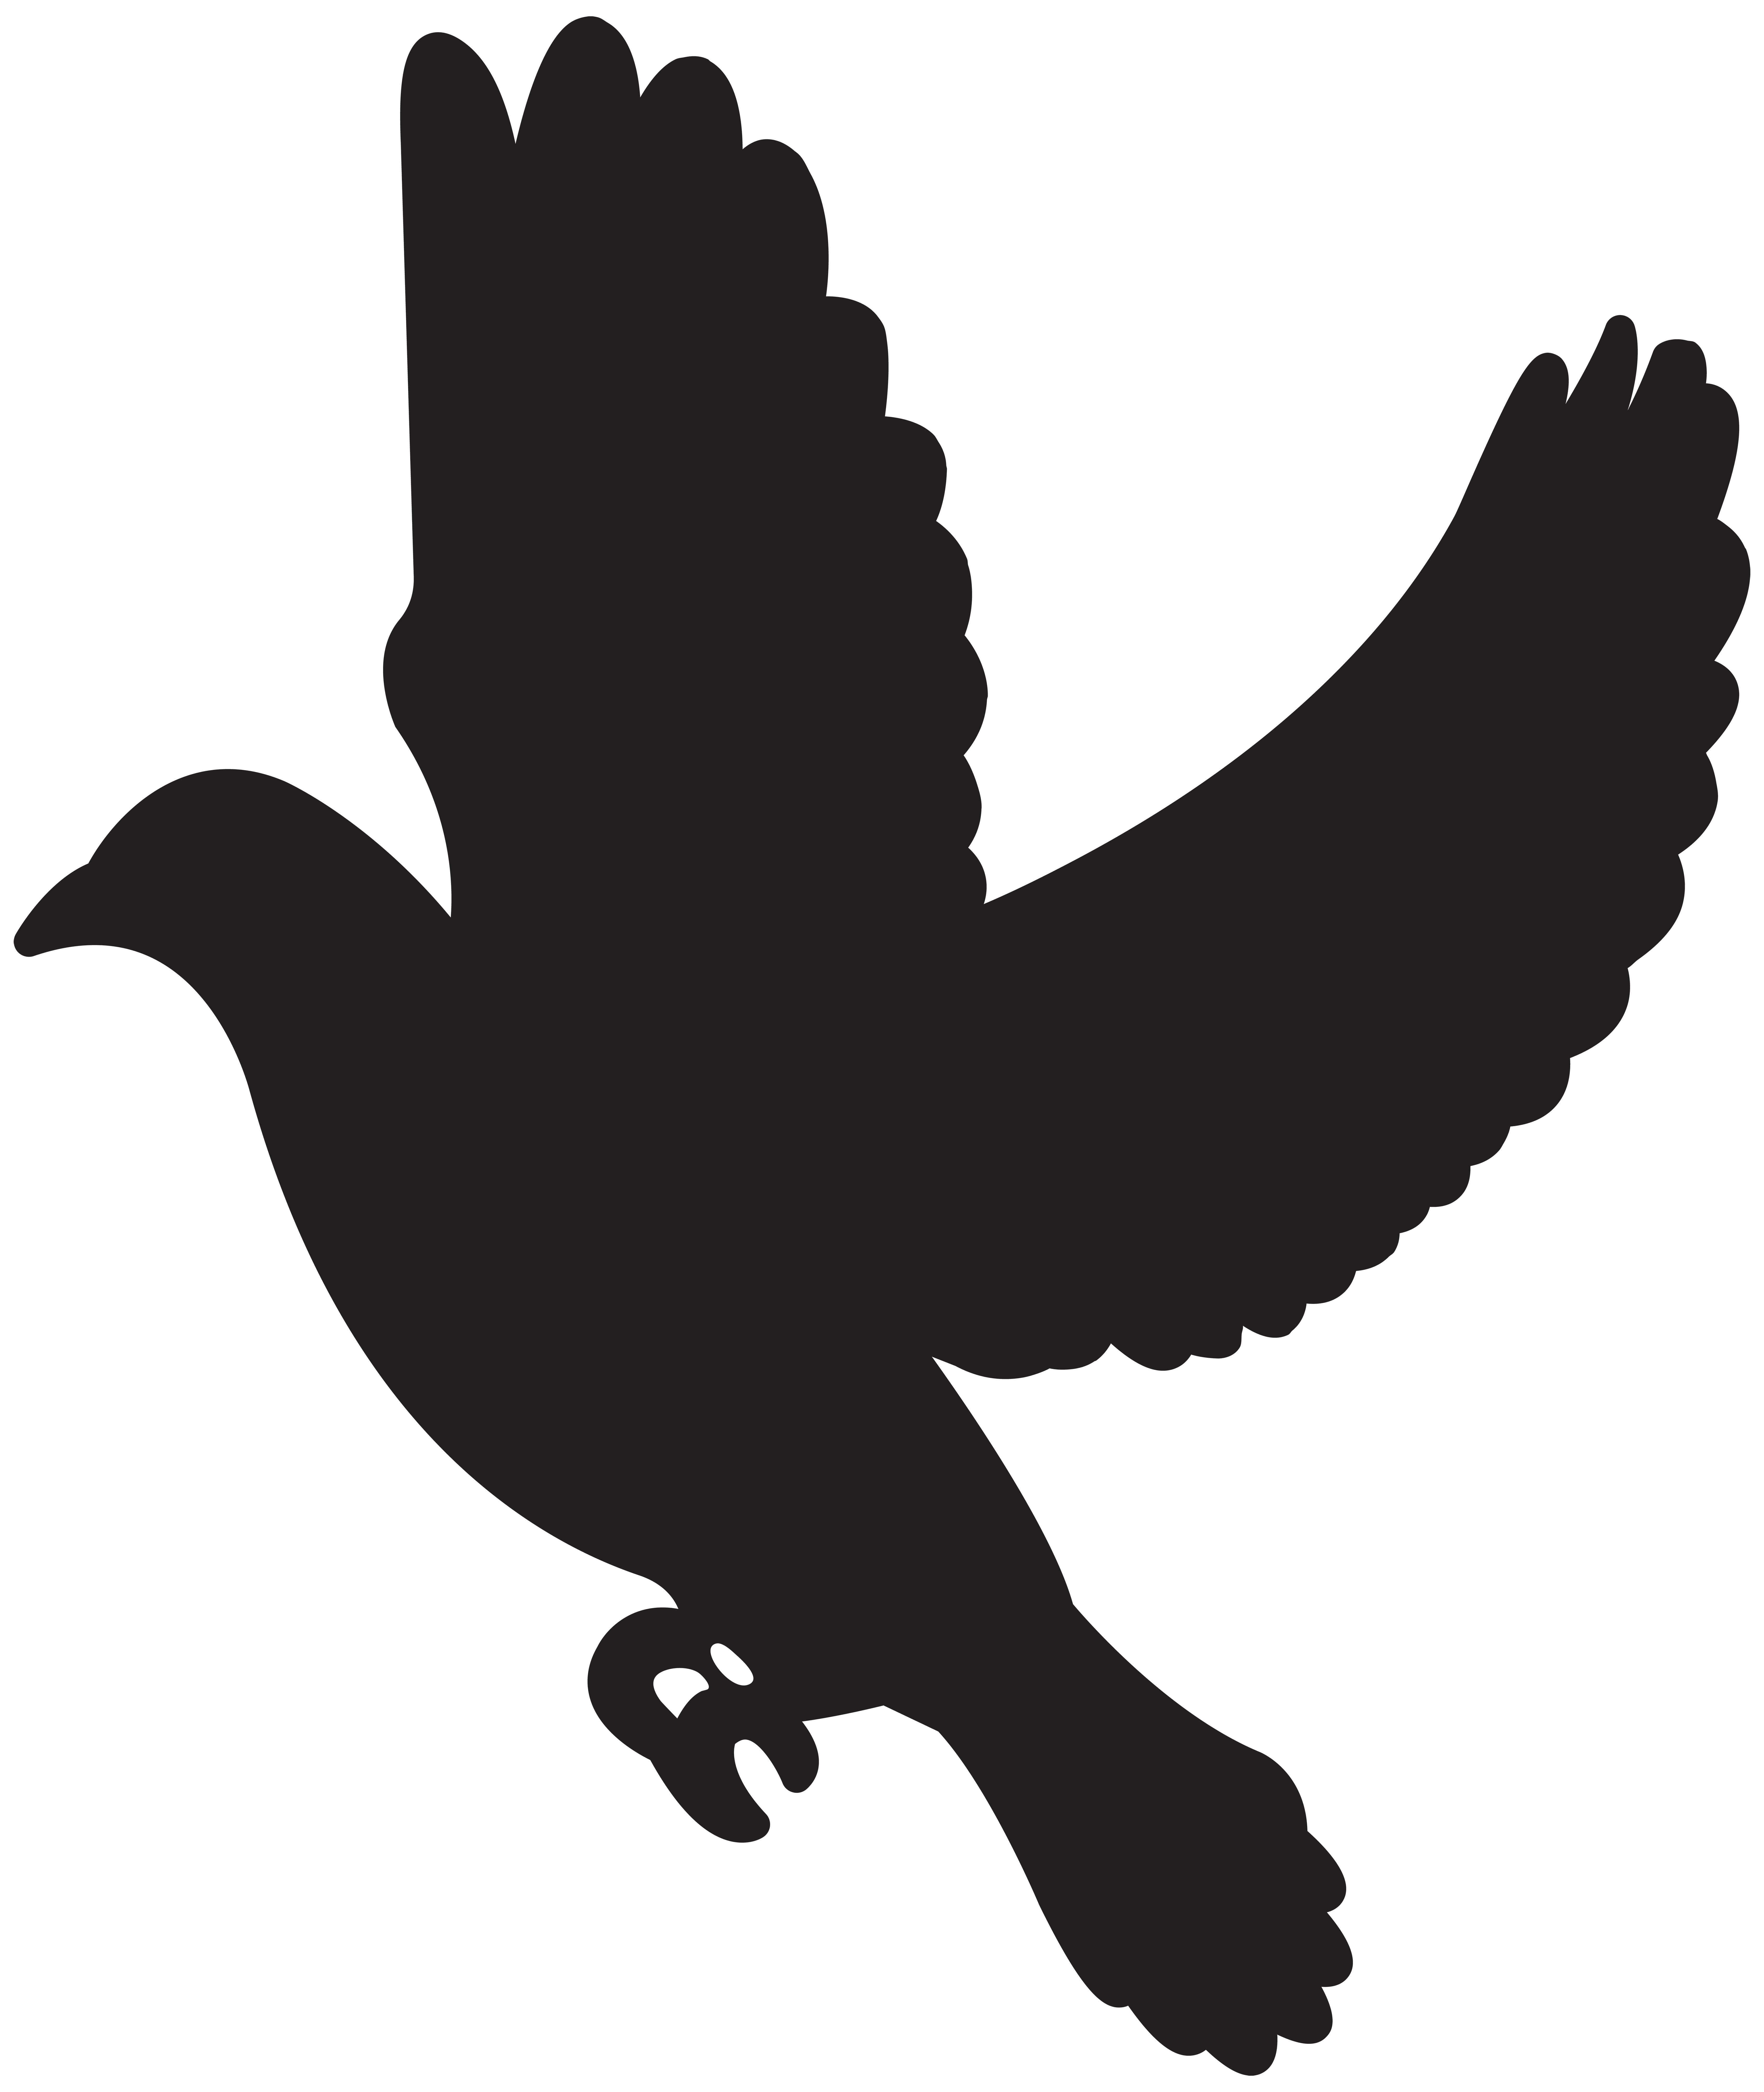 6746x8000 Flying Dove Silhouette Png Clip Artu200b Gallery Yopriceville